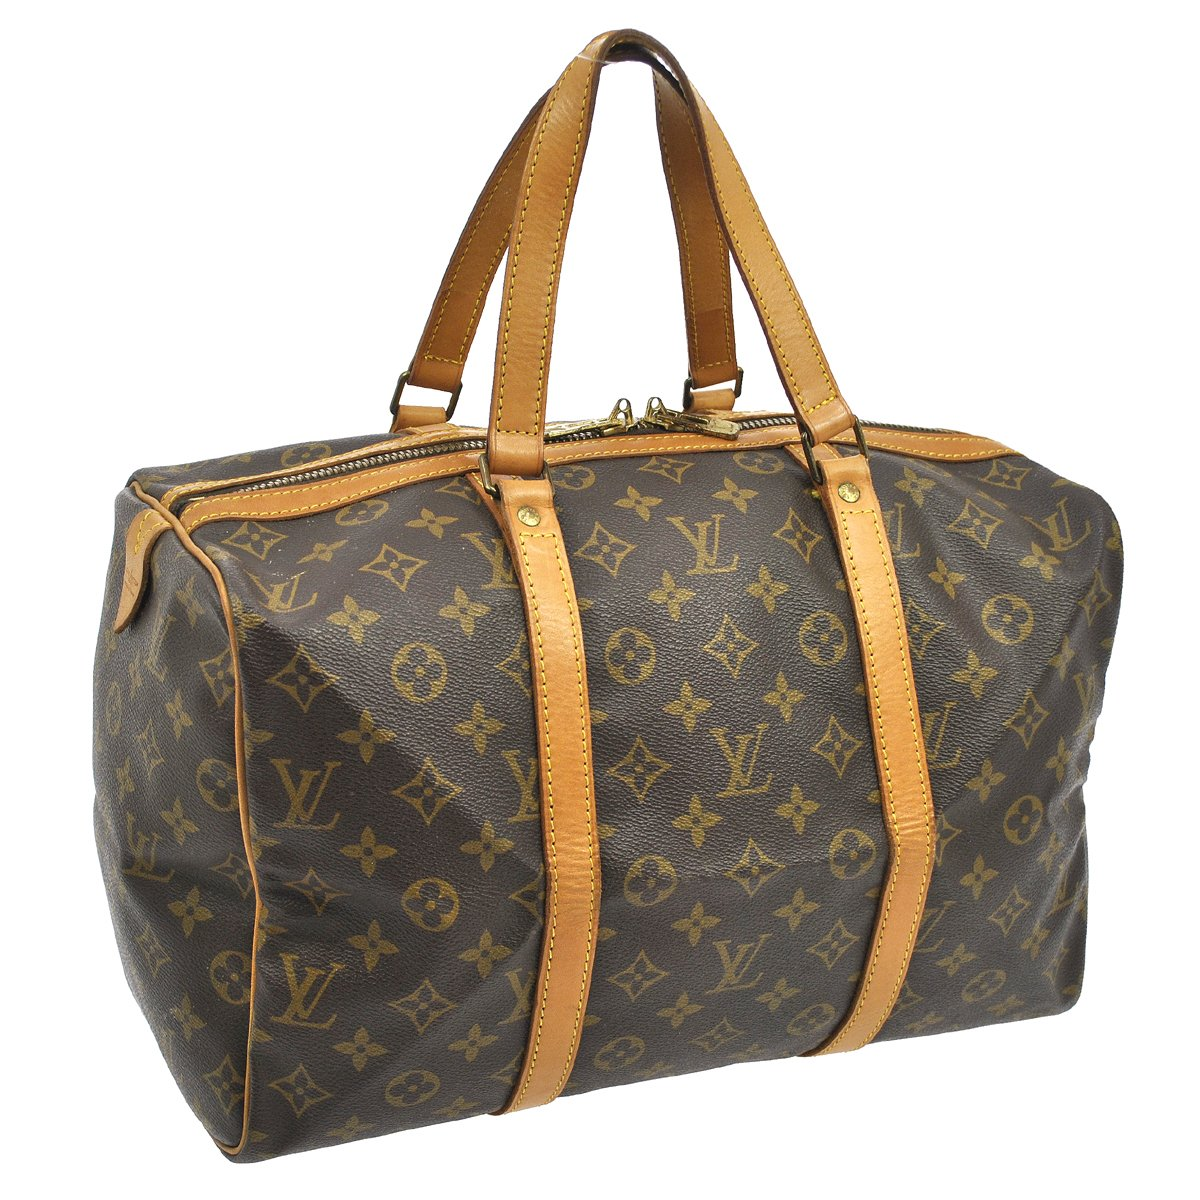 louis vuitton vintage sac souple 35 monogram my frugal fashionista. Black Bedroom Furniture Sets. Home Design Ideas